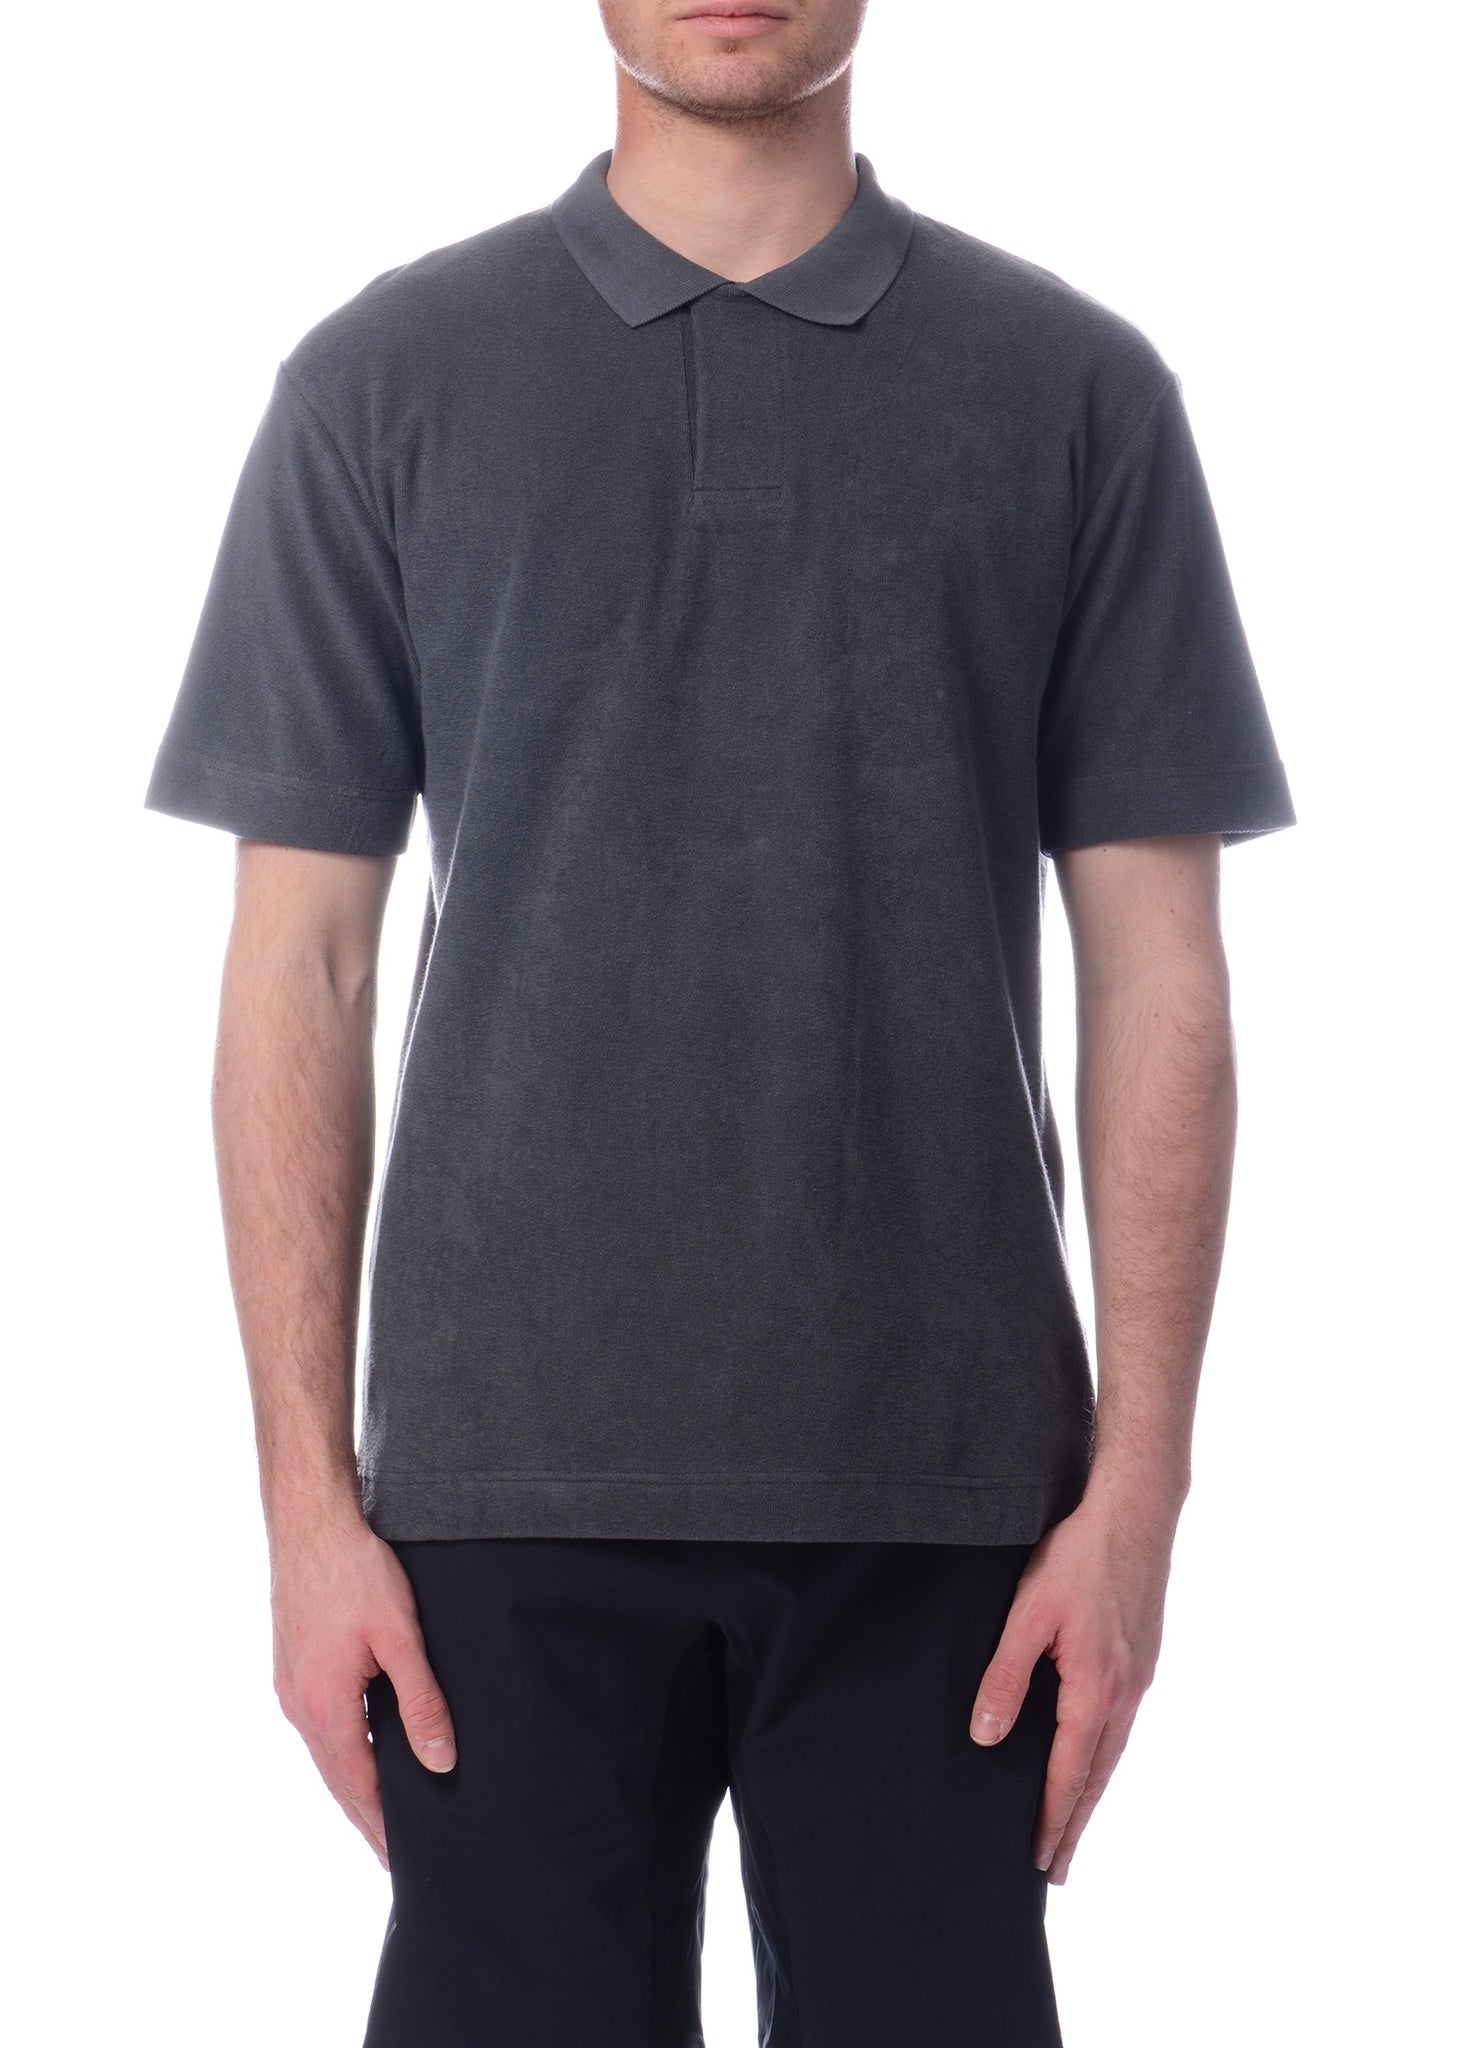 Polo en Serviette Gris Charcoal|Charcoal Cotton Towelling Polo Shirt